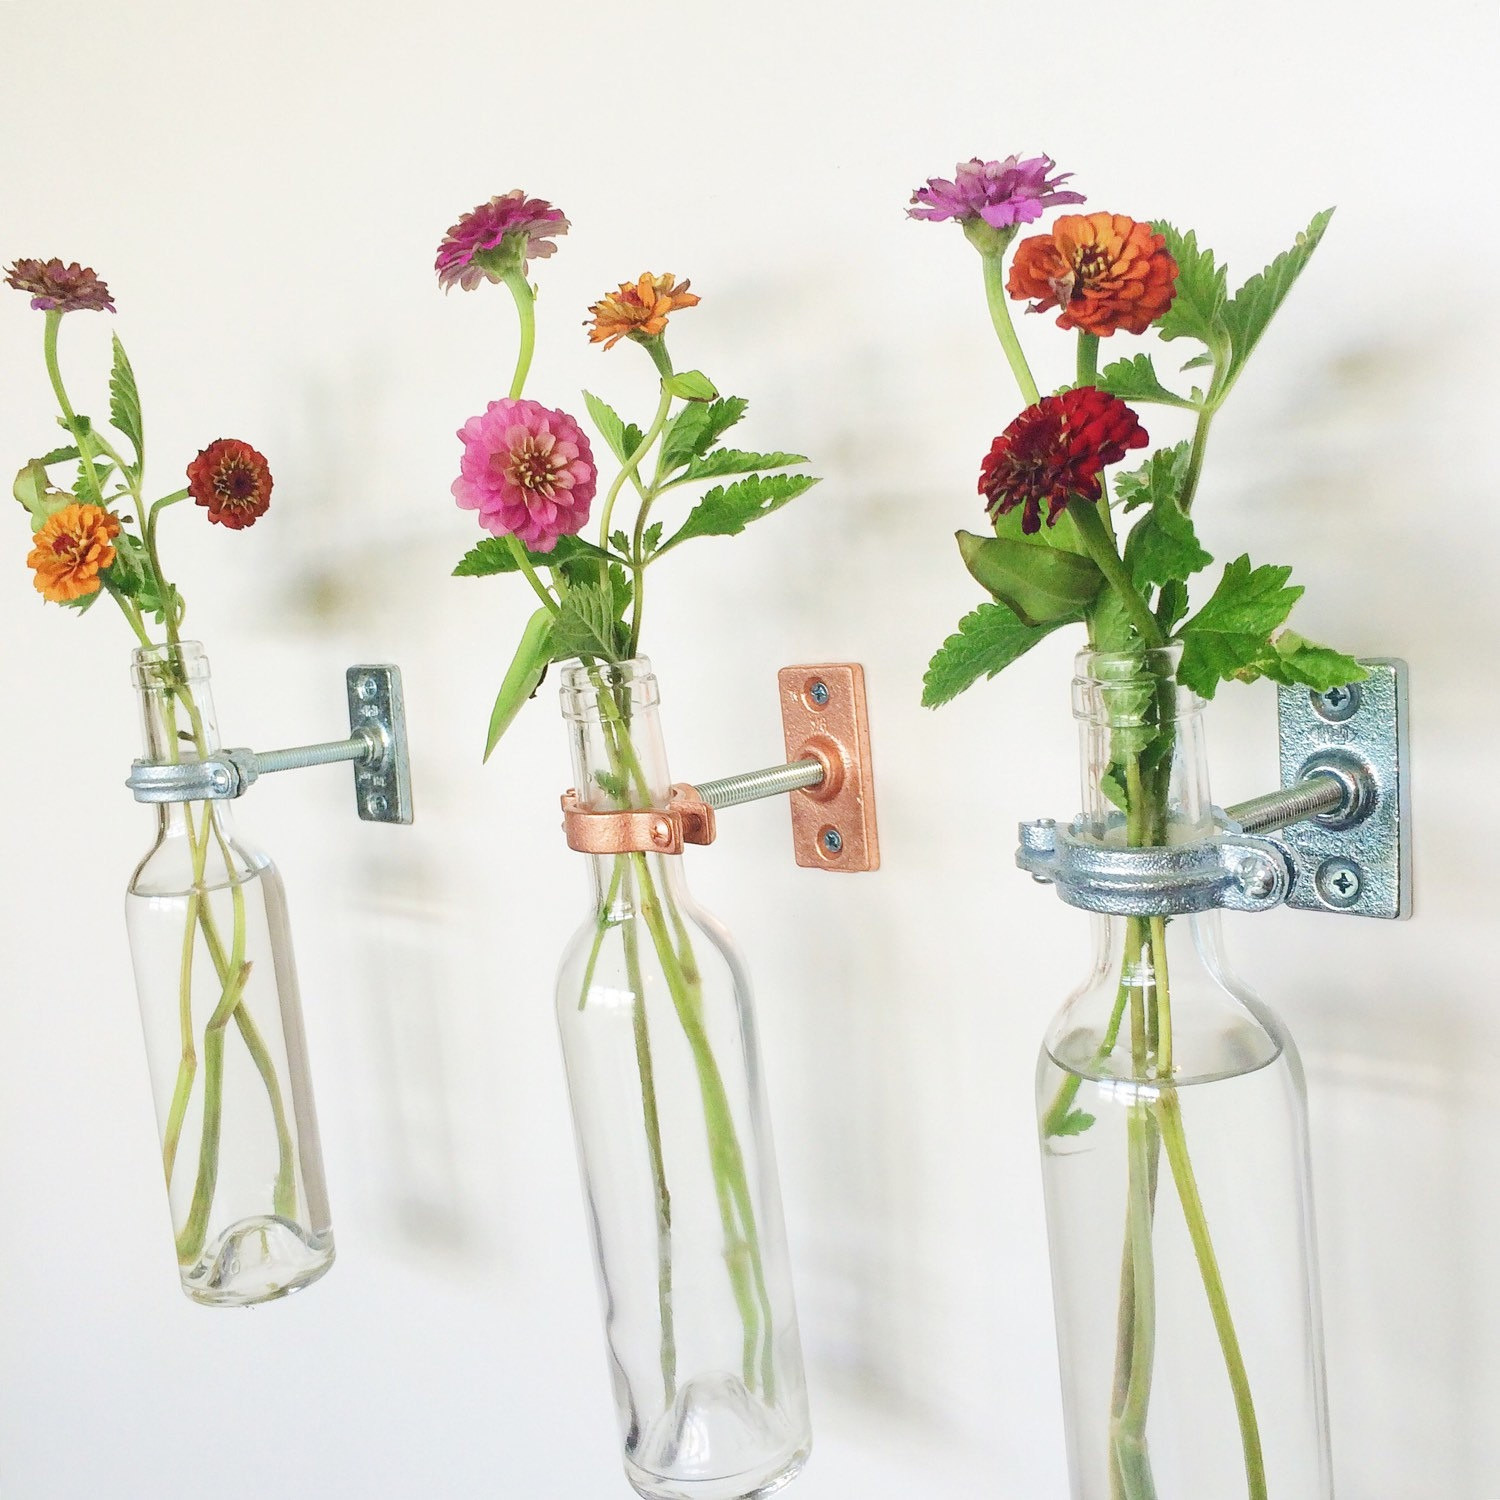 14 Best Wall Hanging Bud Vase 2021 free download wall hanging bud vase of hanging vases with flowers t with regard to wall flower hanging bud vase beautiful 2 wine bottle wall flower vases mother s day t